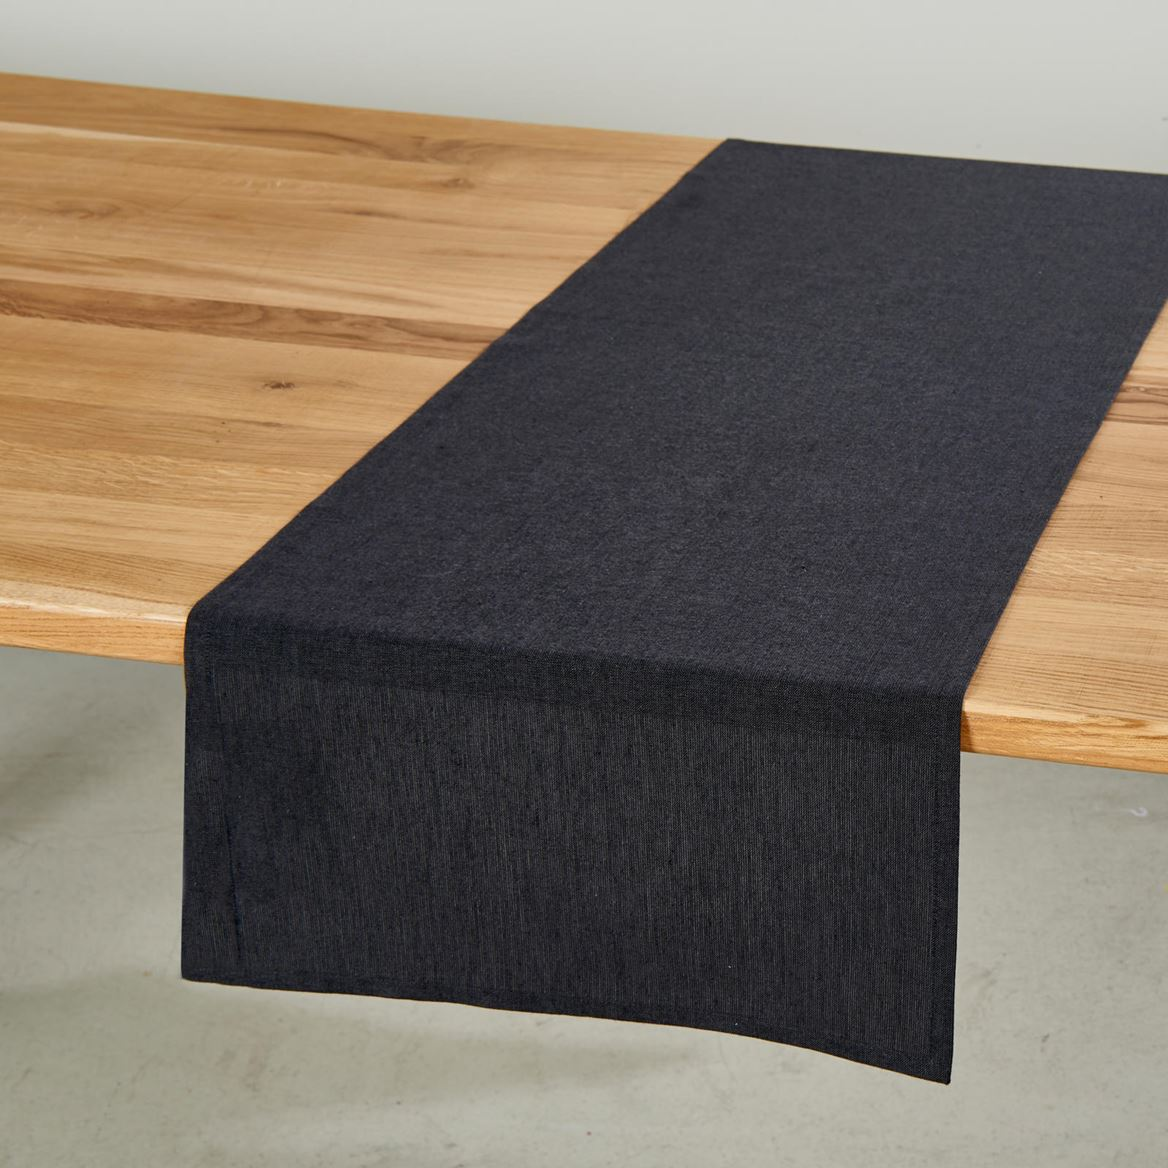 ORGANIC Chemin de table noir Larg. 40 x Long. 140 cm_organic-chemin-de-table-noir-larg--40-x-long--140-cm